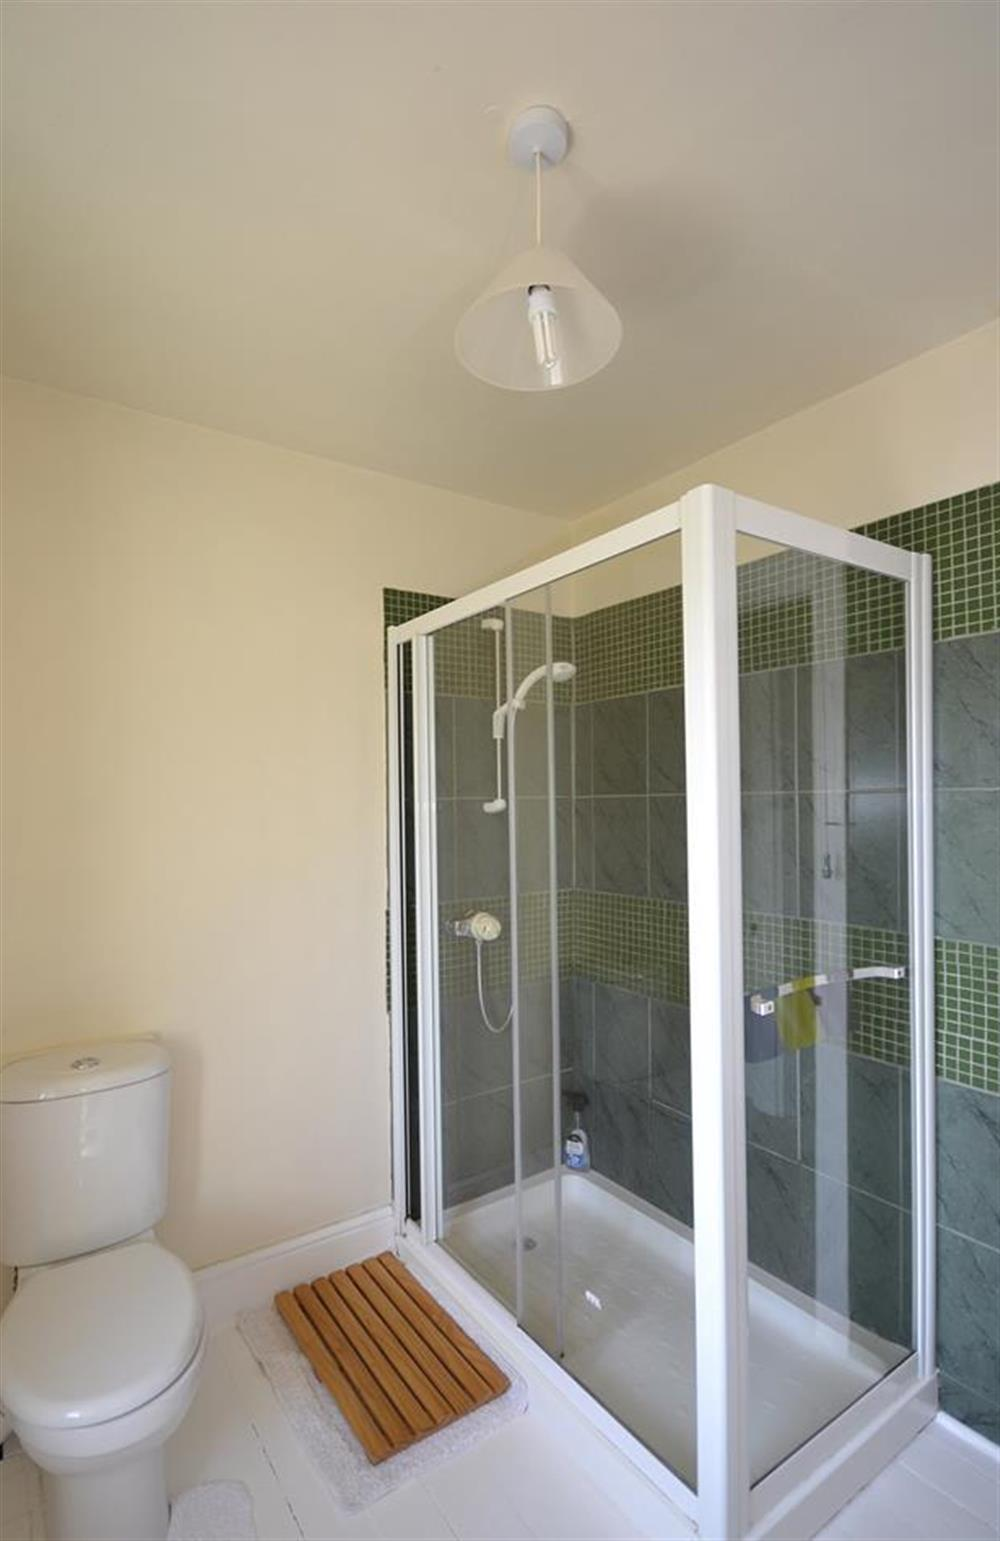 The family shower room, at Foxenhole Farmhouse, Dittisham